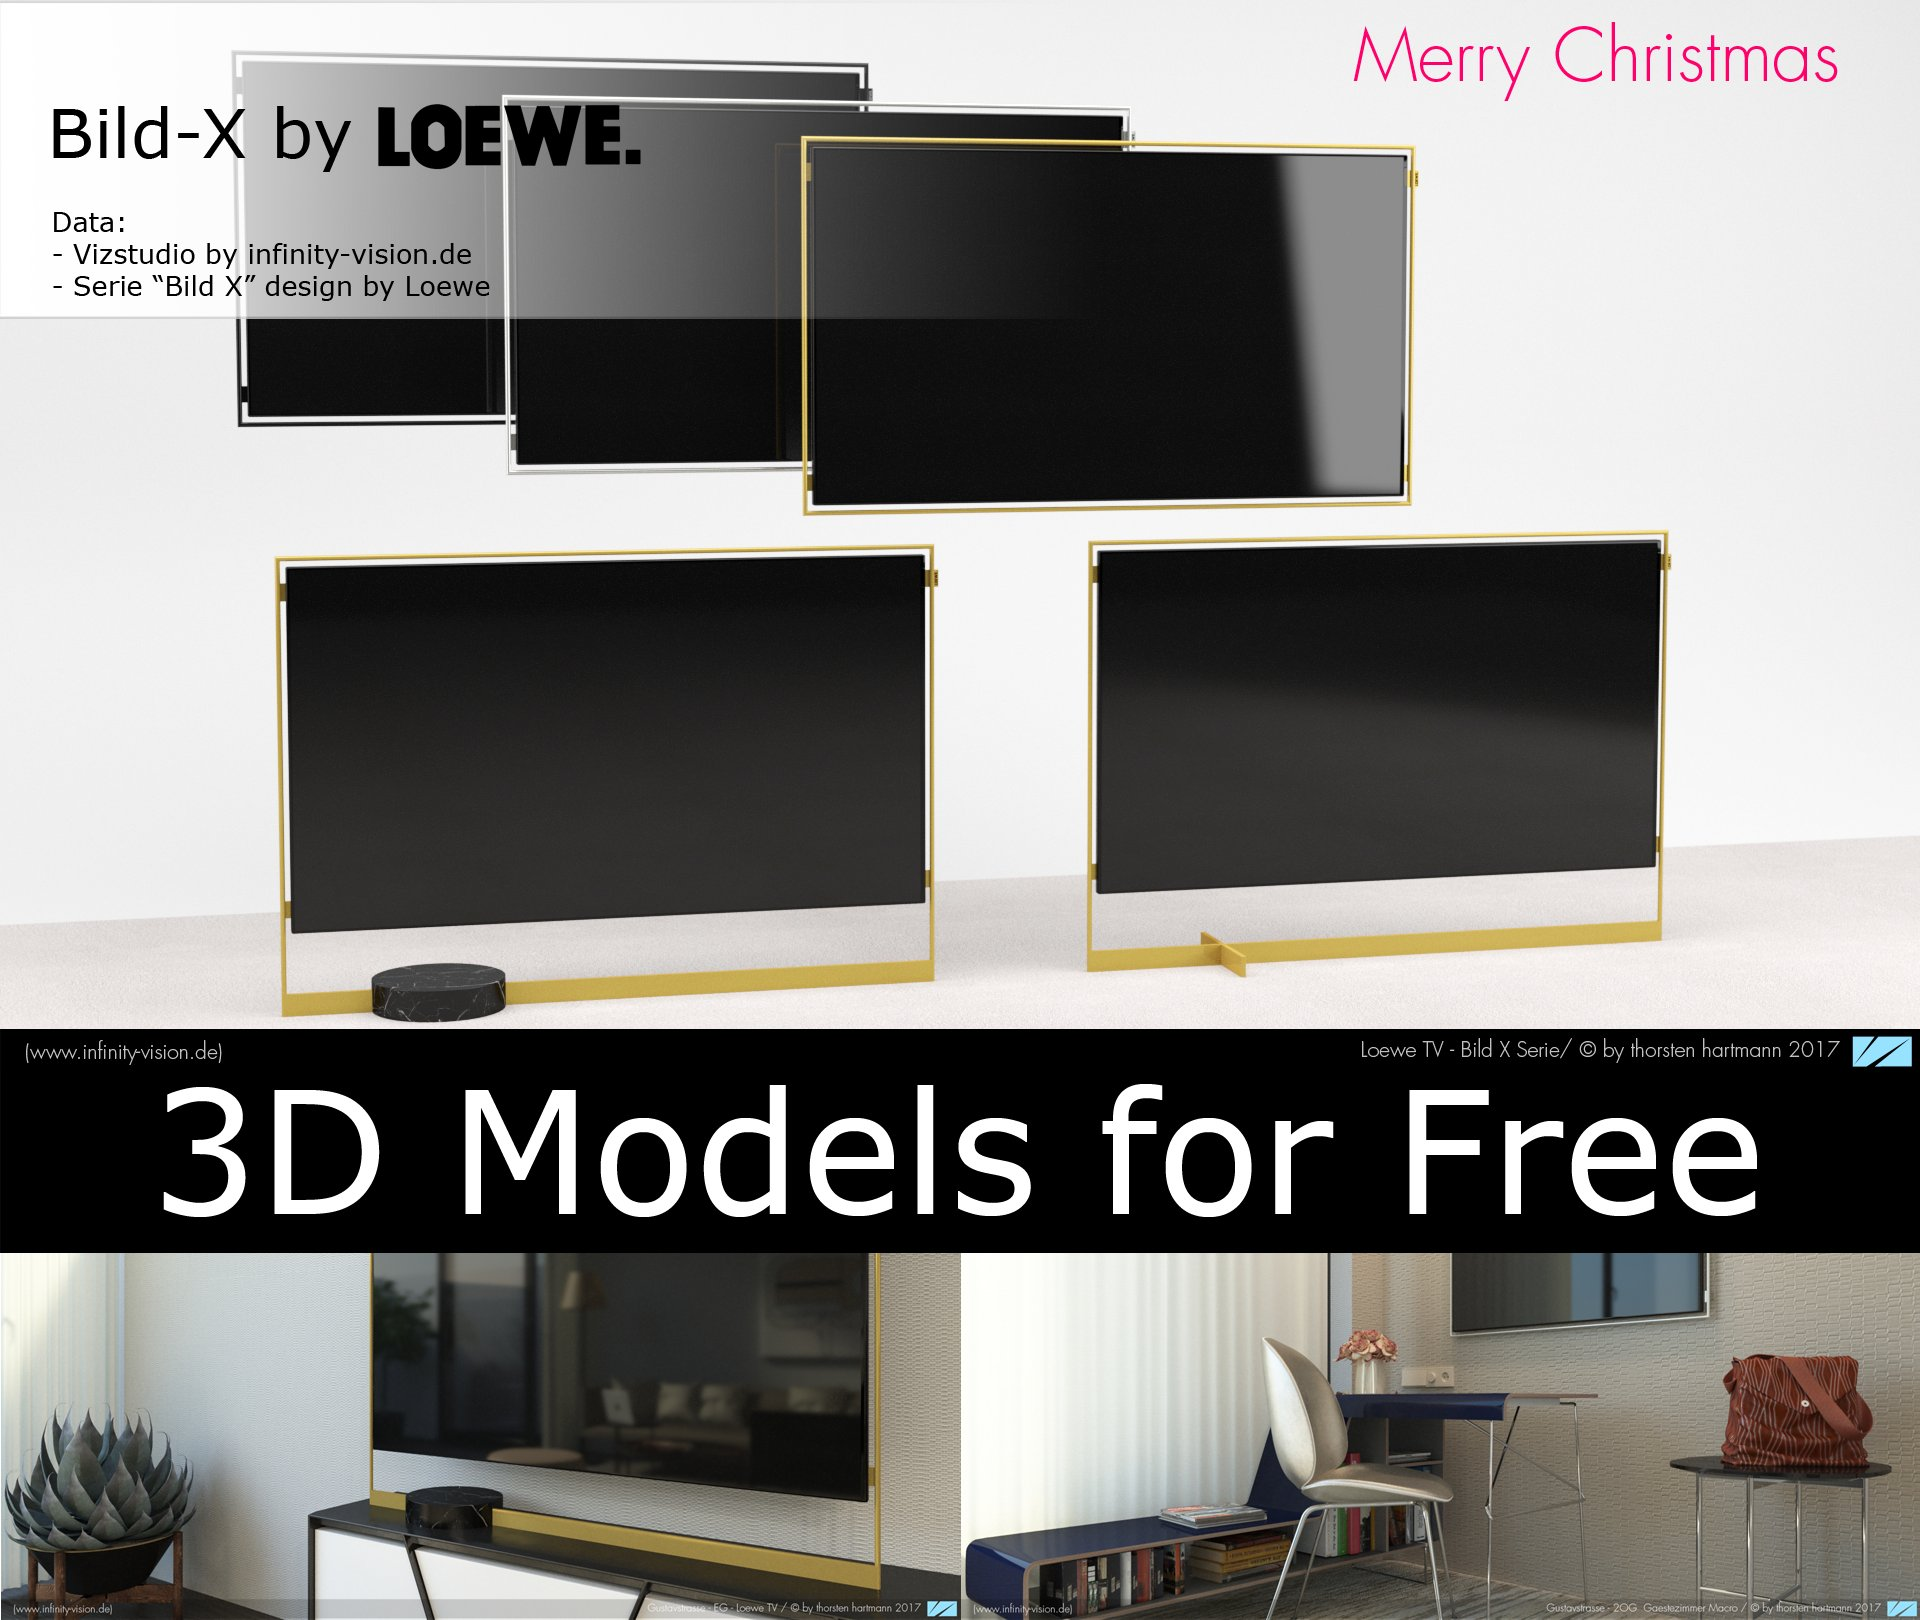 Lasvit Free 3D-Models copyrights by Infinity Vision